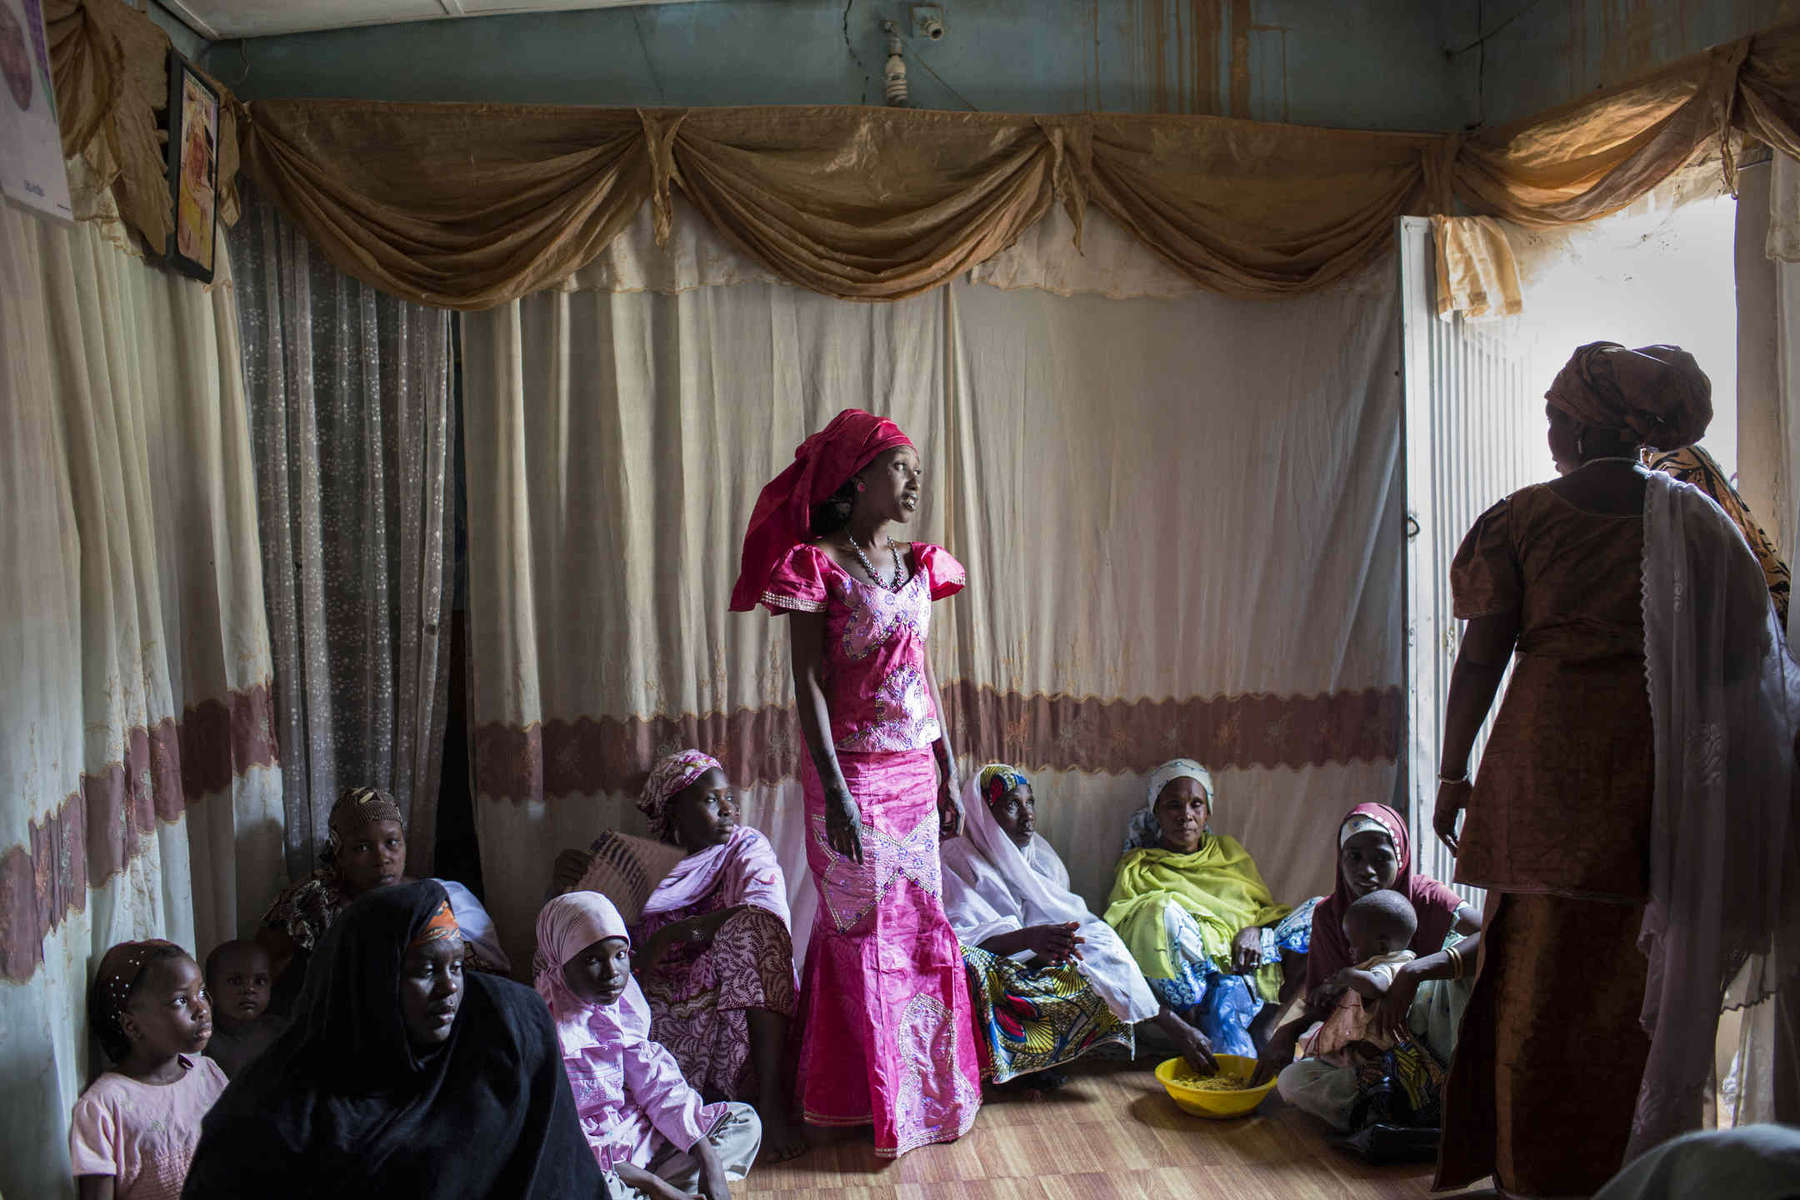 A young girl, who says she's 18, prepares to be the second wife of a civil servant during the women's part of her wedding ceremony in conservative Muslim Northern Nigeria.